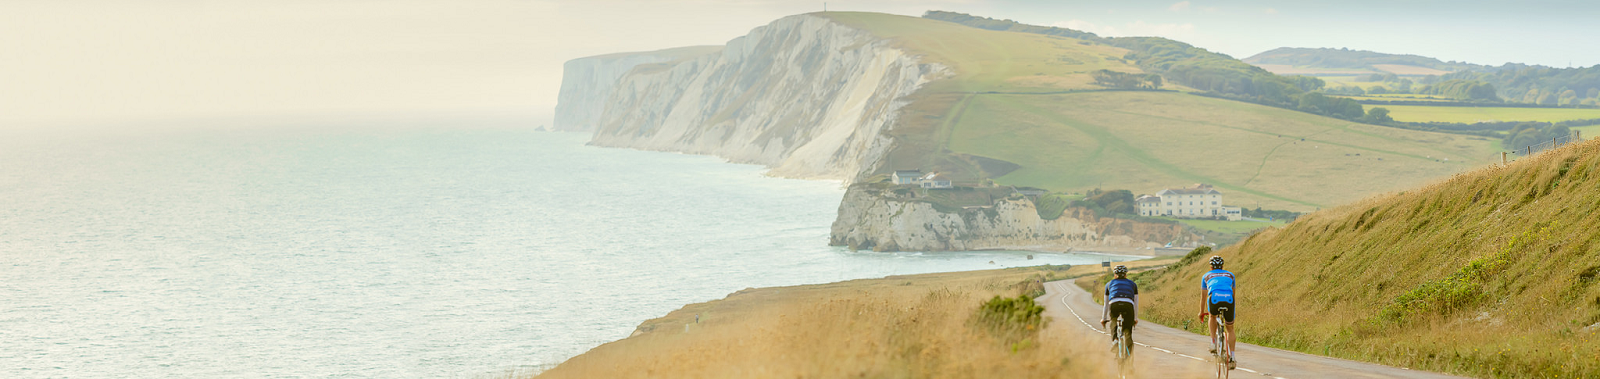 Self Catering Holiday Accommodation on The Isle of Wight